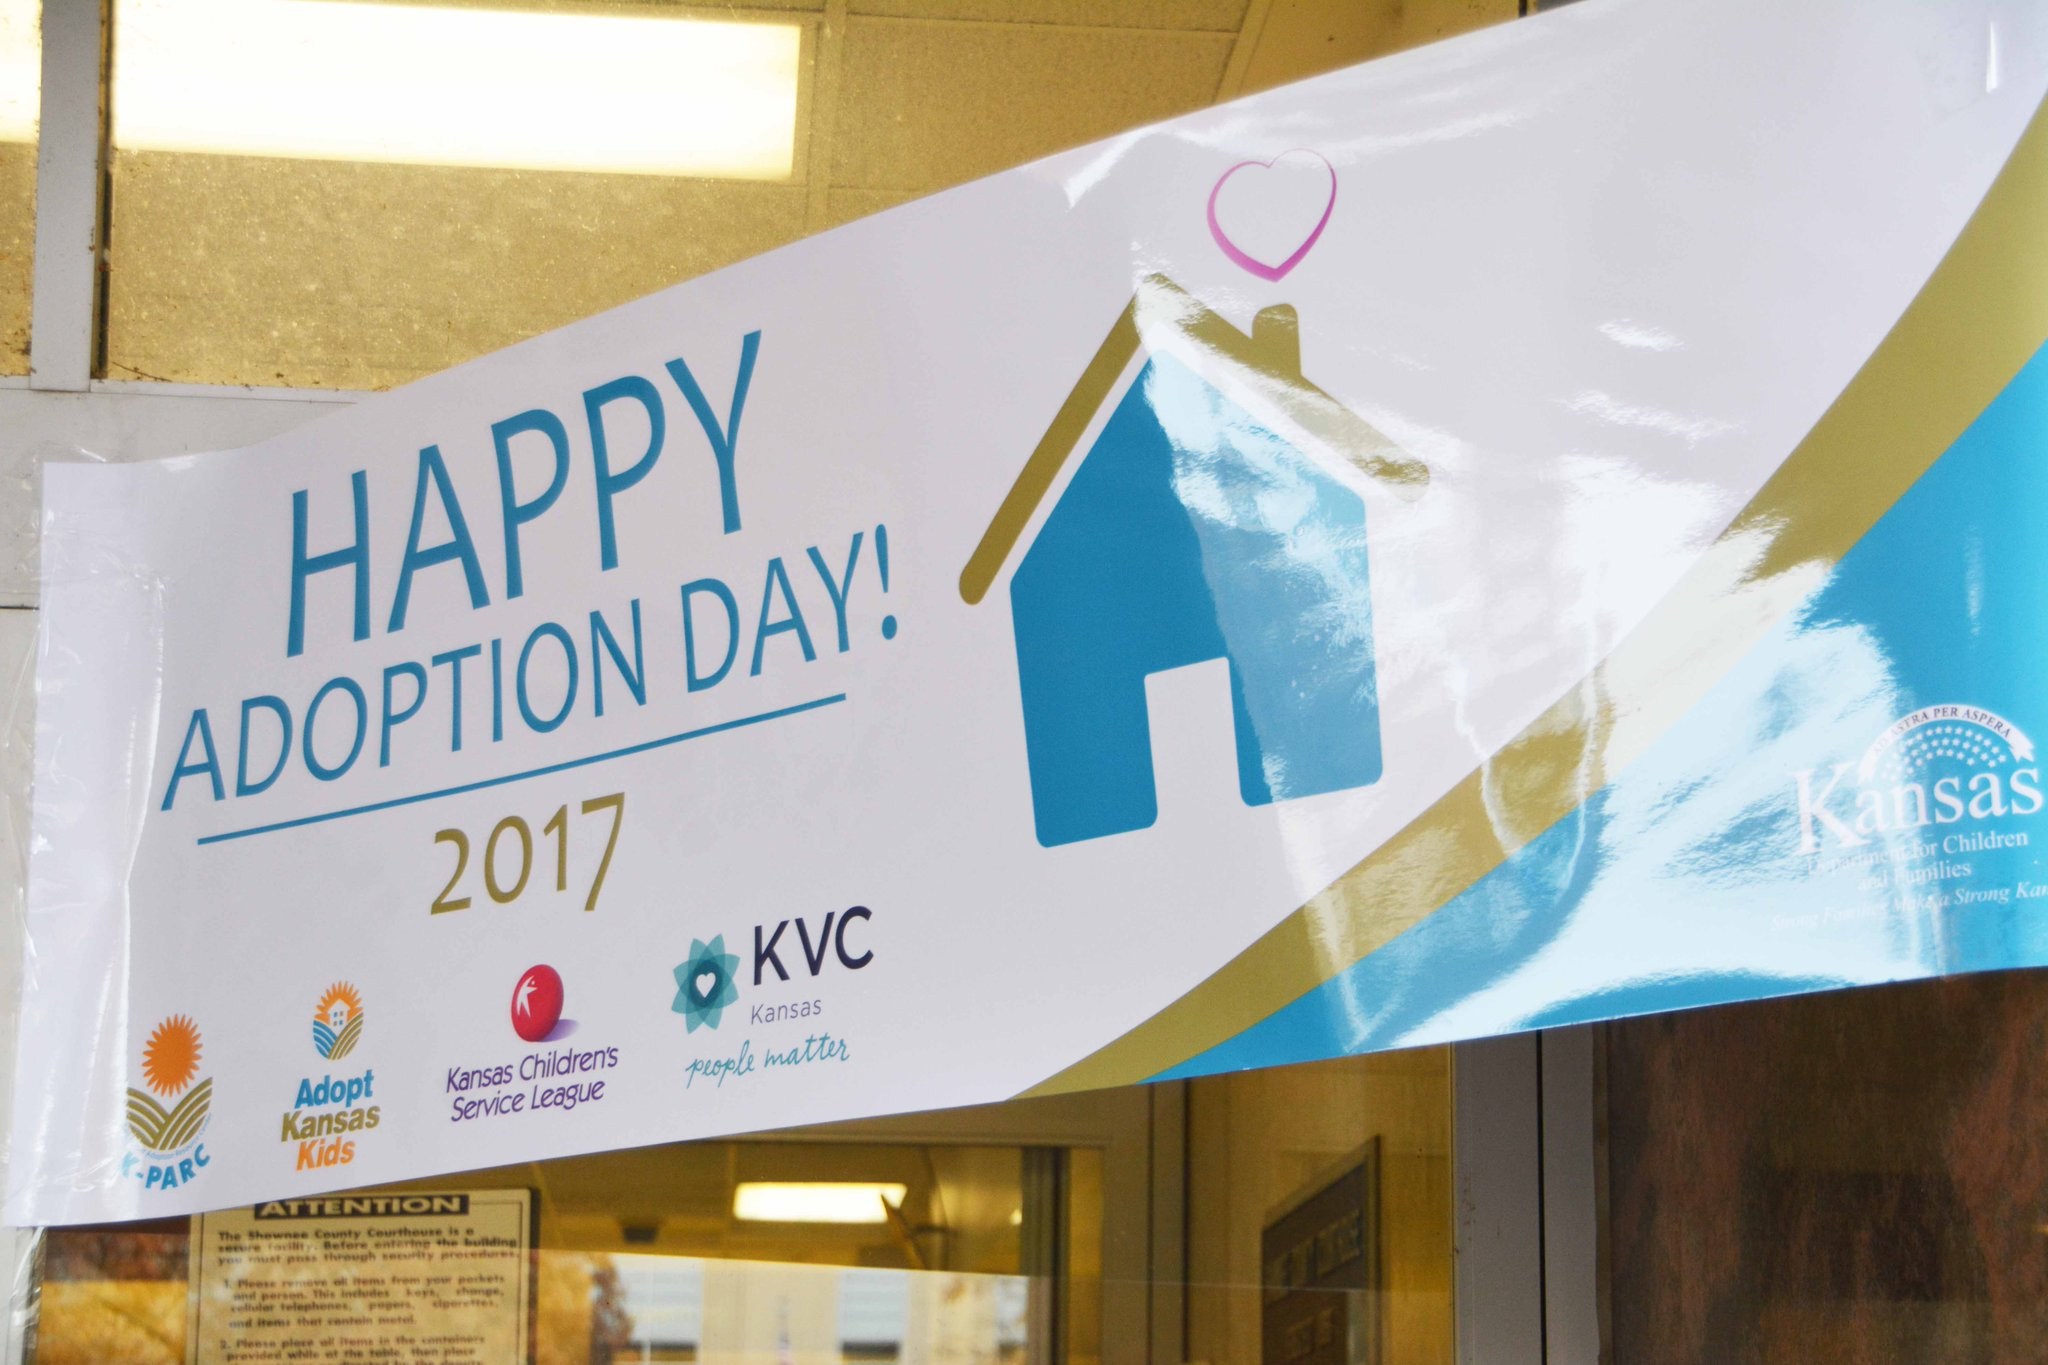 Dcfkansas On Twitter Happy To Take Part In A National Adoption Day Celebration On Saturday Congratulations To All The Families Who Welcomed Children Into Their Lives This Weekend Adoptkansaskids Ksleg Https T Co Woxzjuo0nx